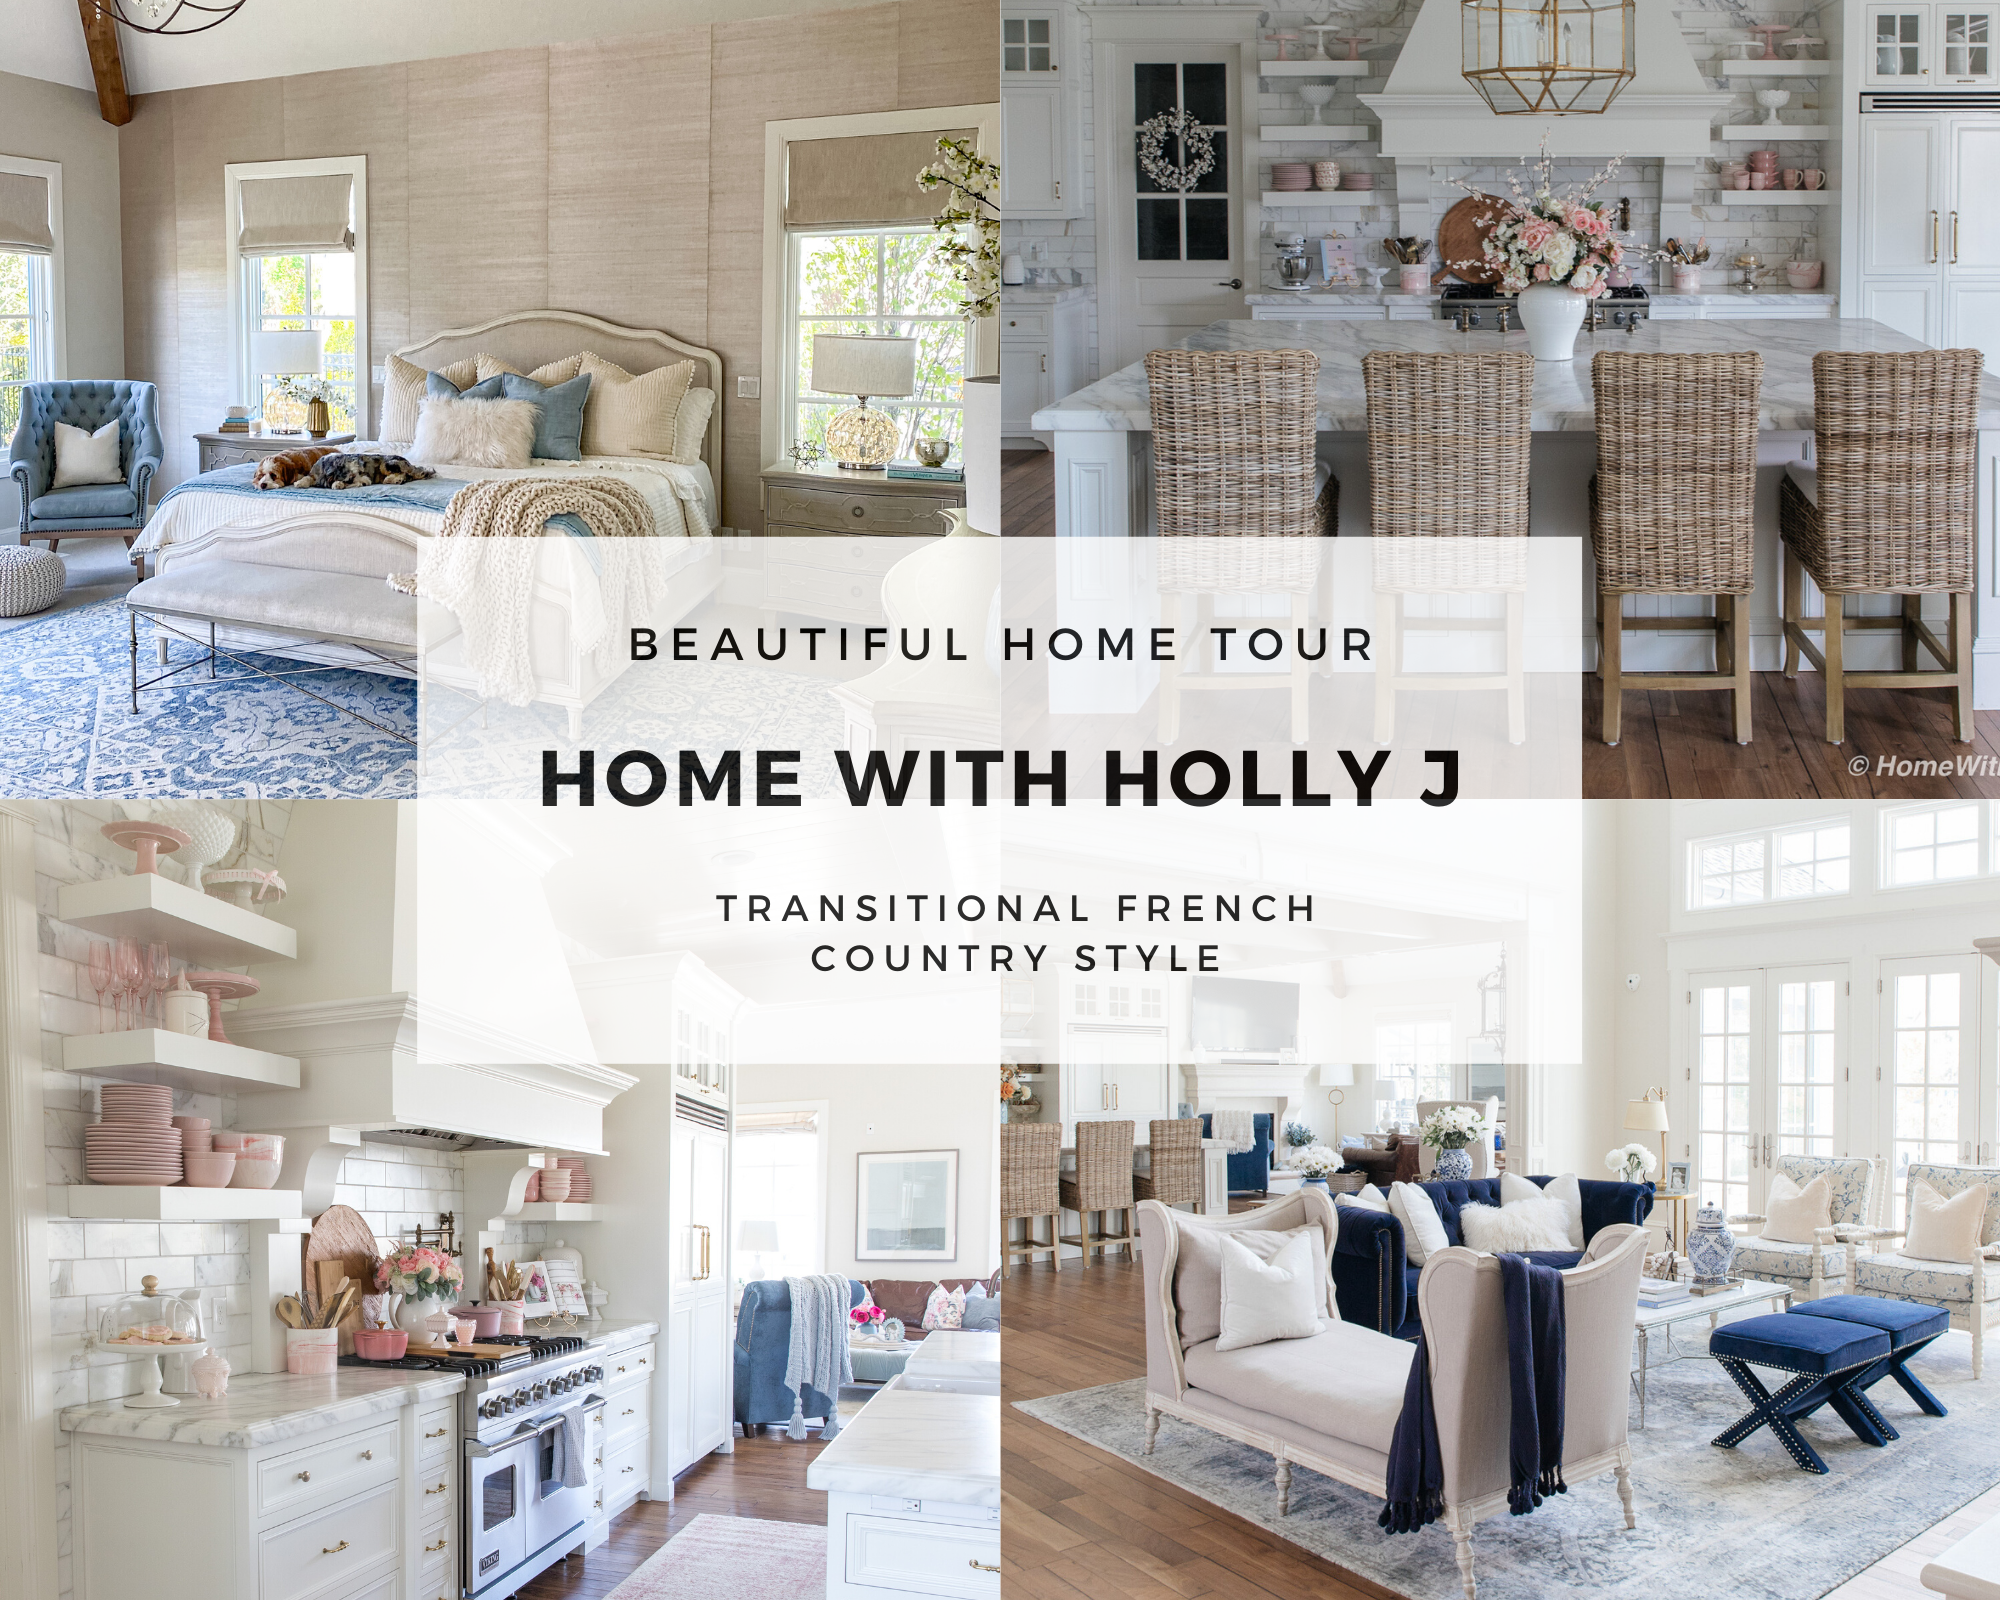 Beautiful Home Tour Home With Holly J Sanctuary Home Decor